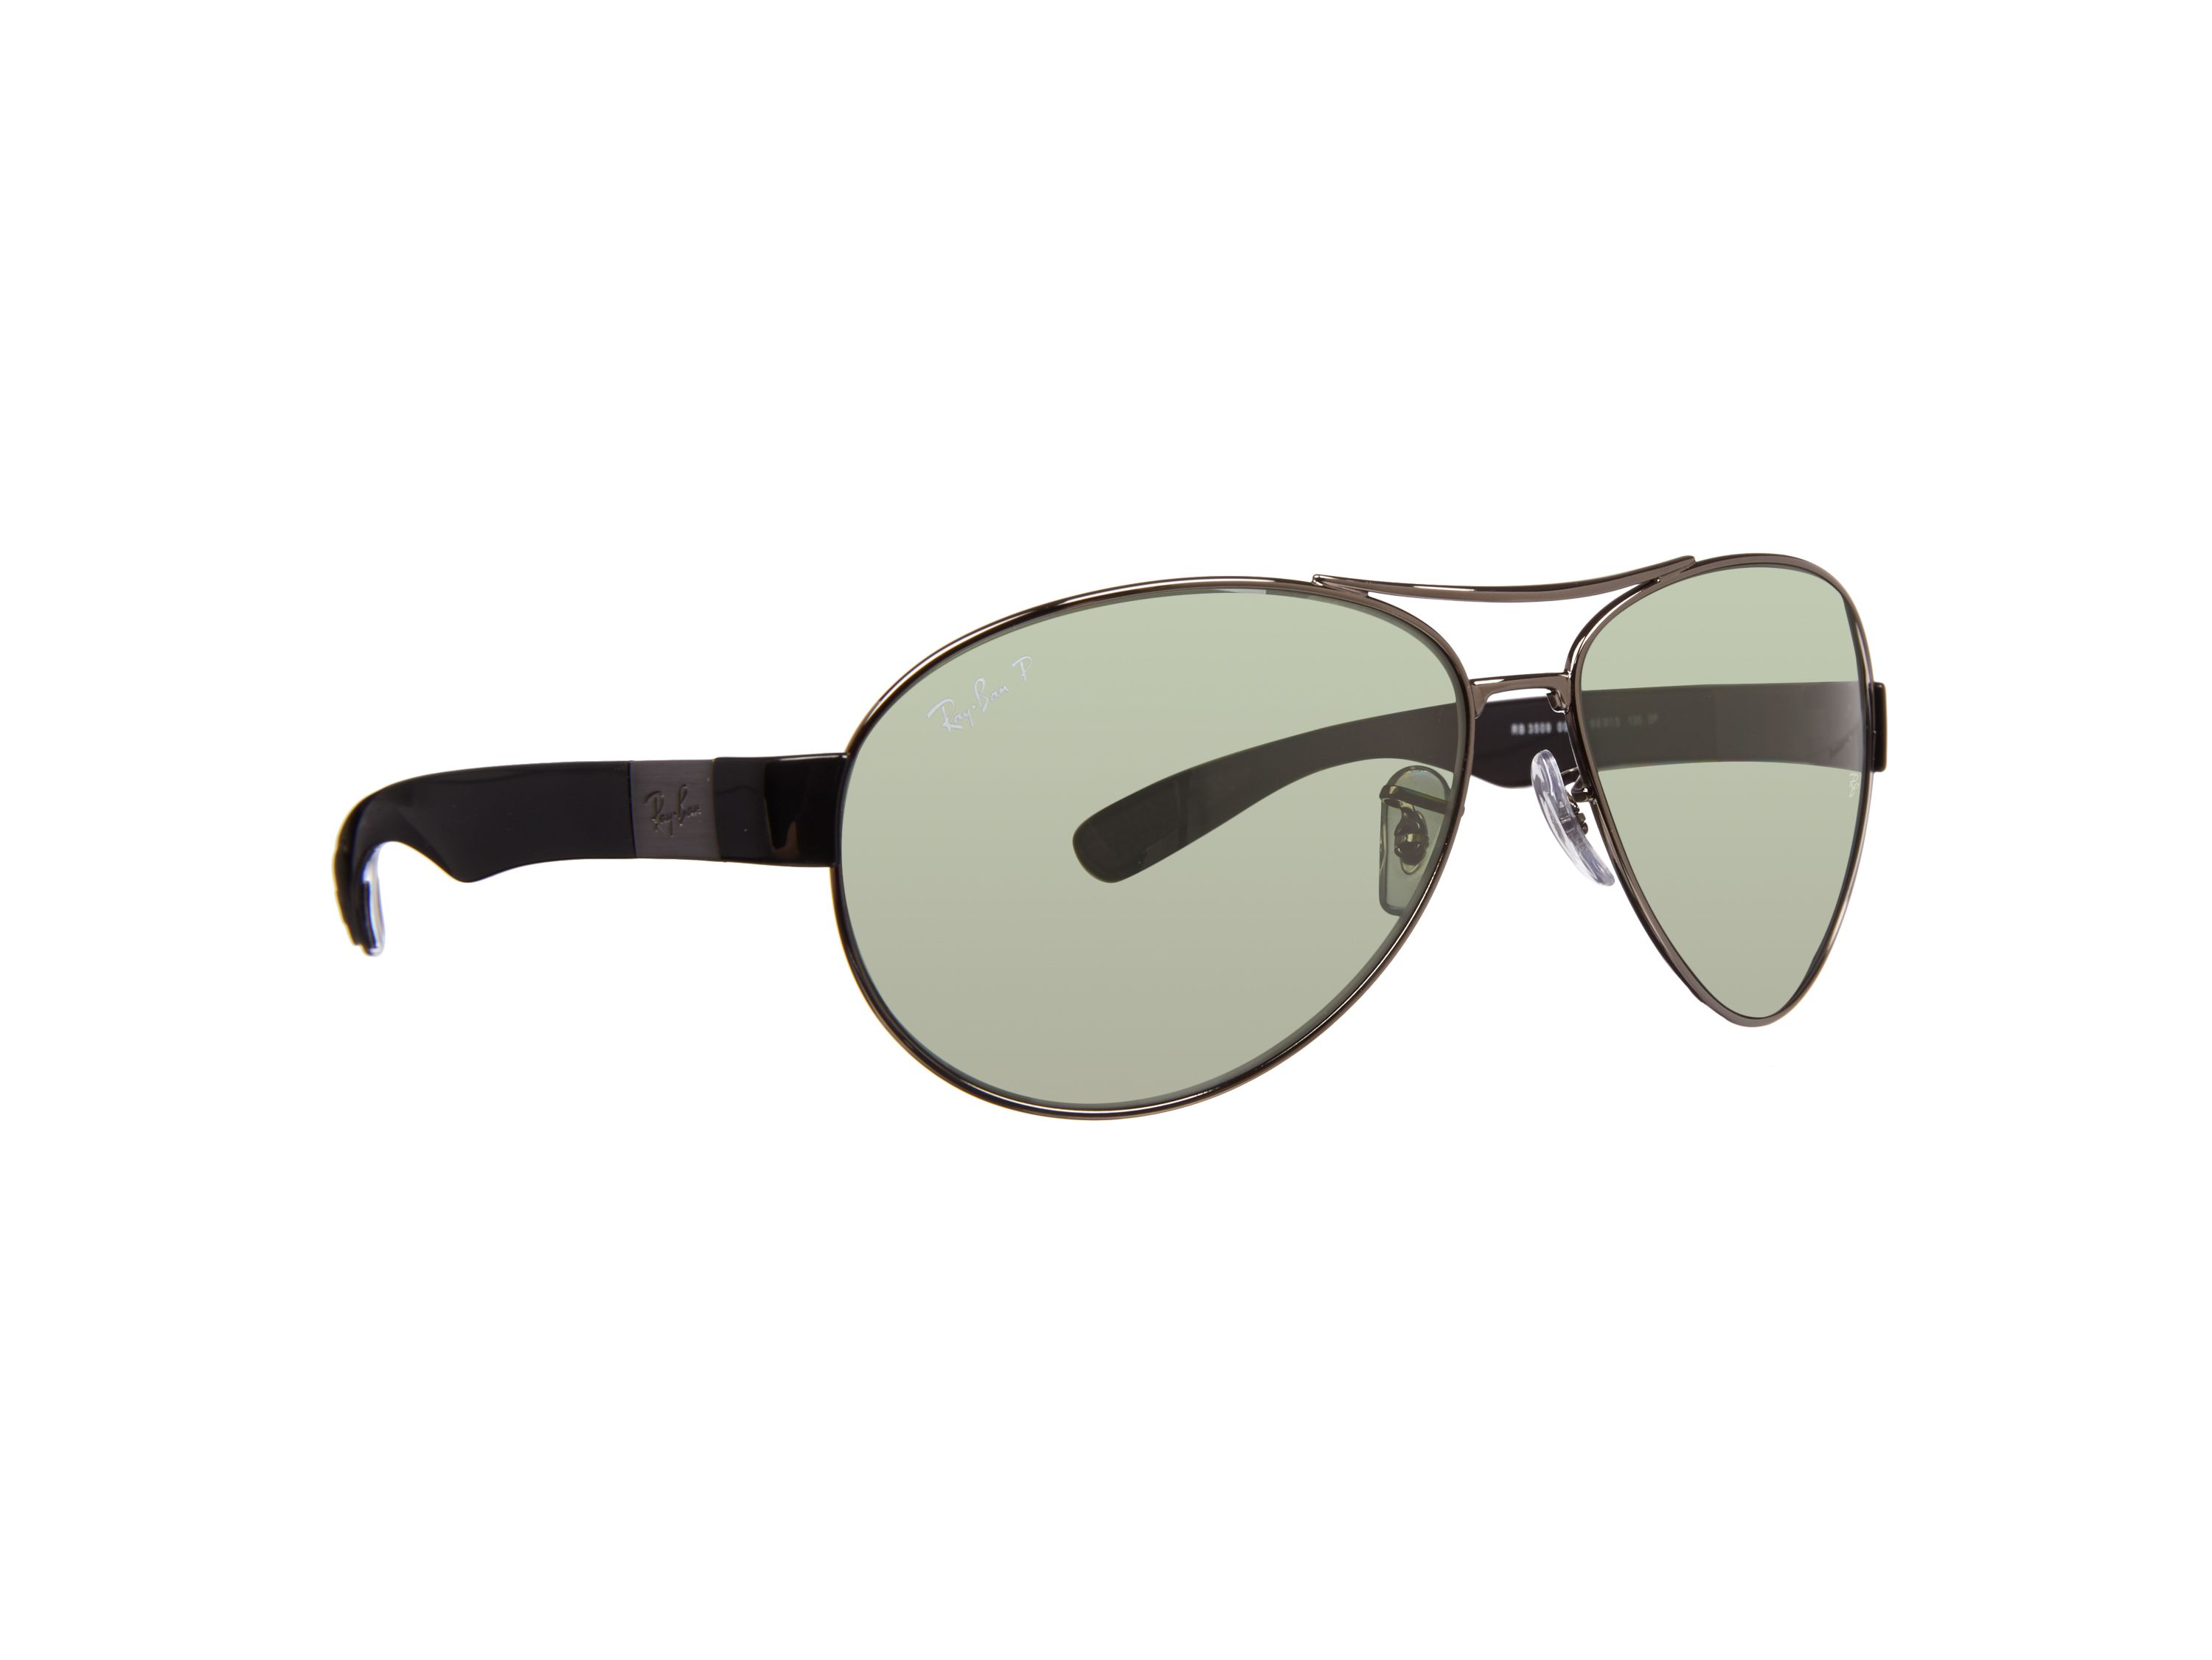 Rb3509 men`s pilot sunglasses